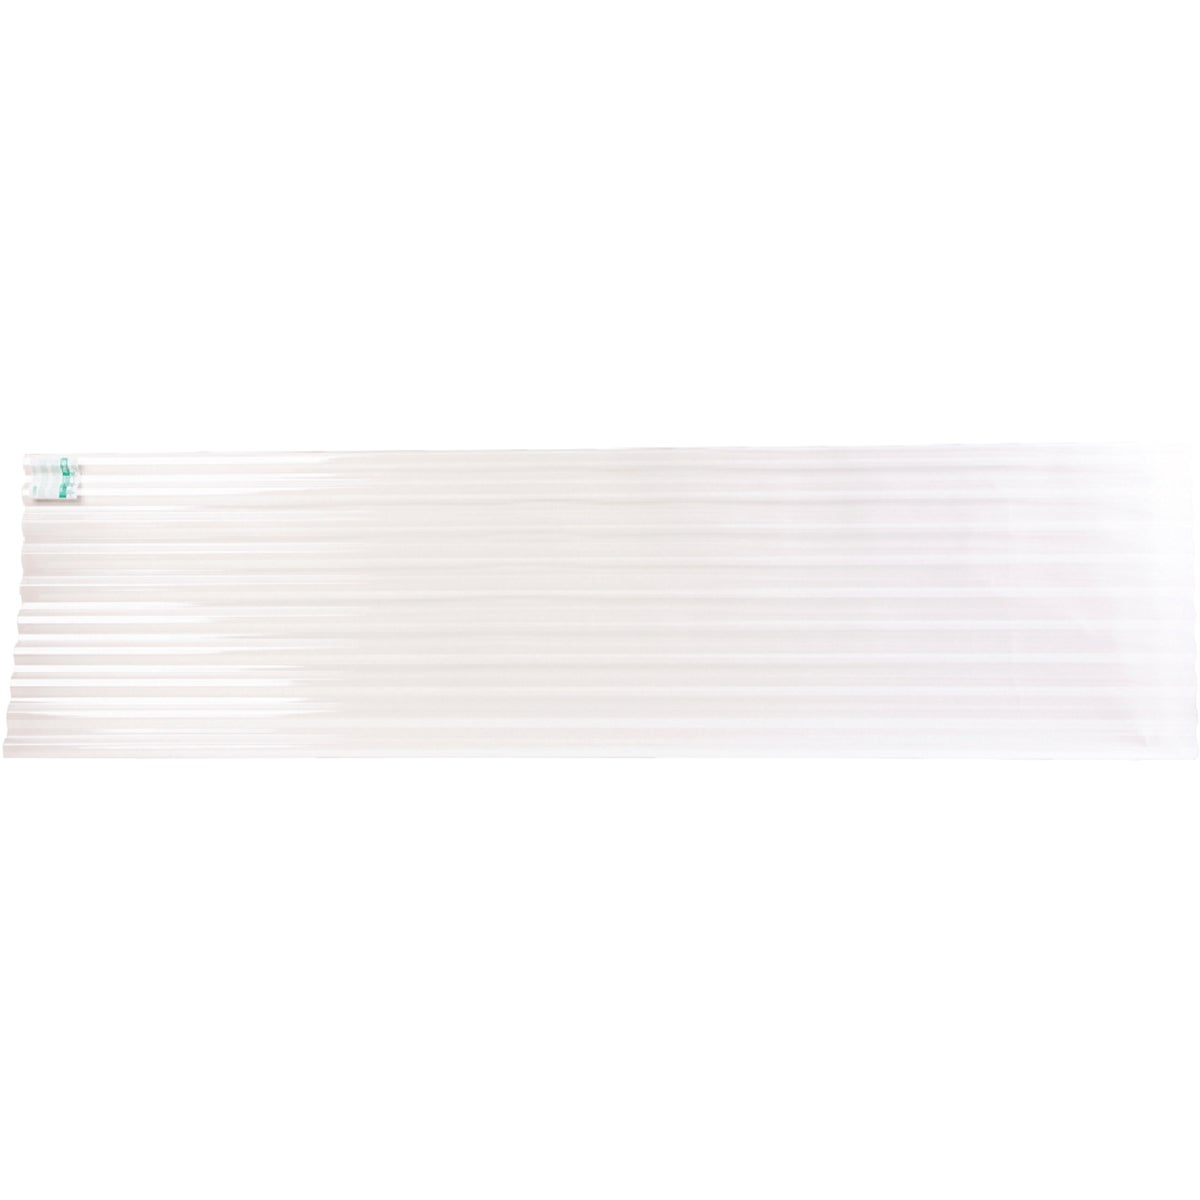 12' CLR CORRUGATED PANEL